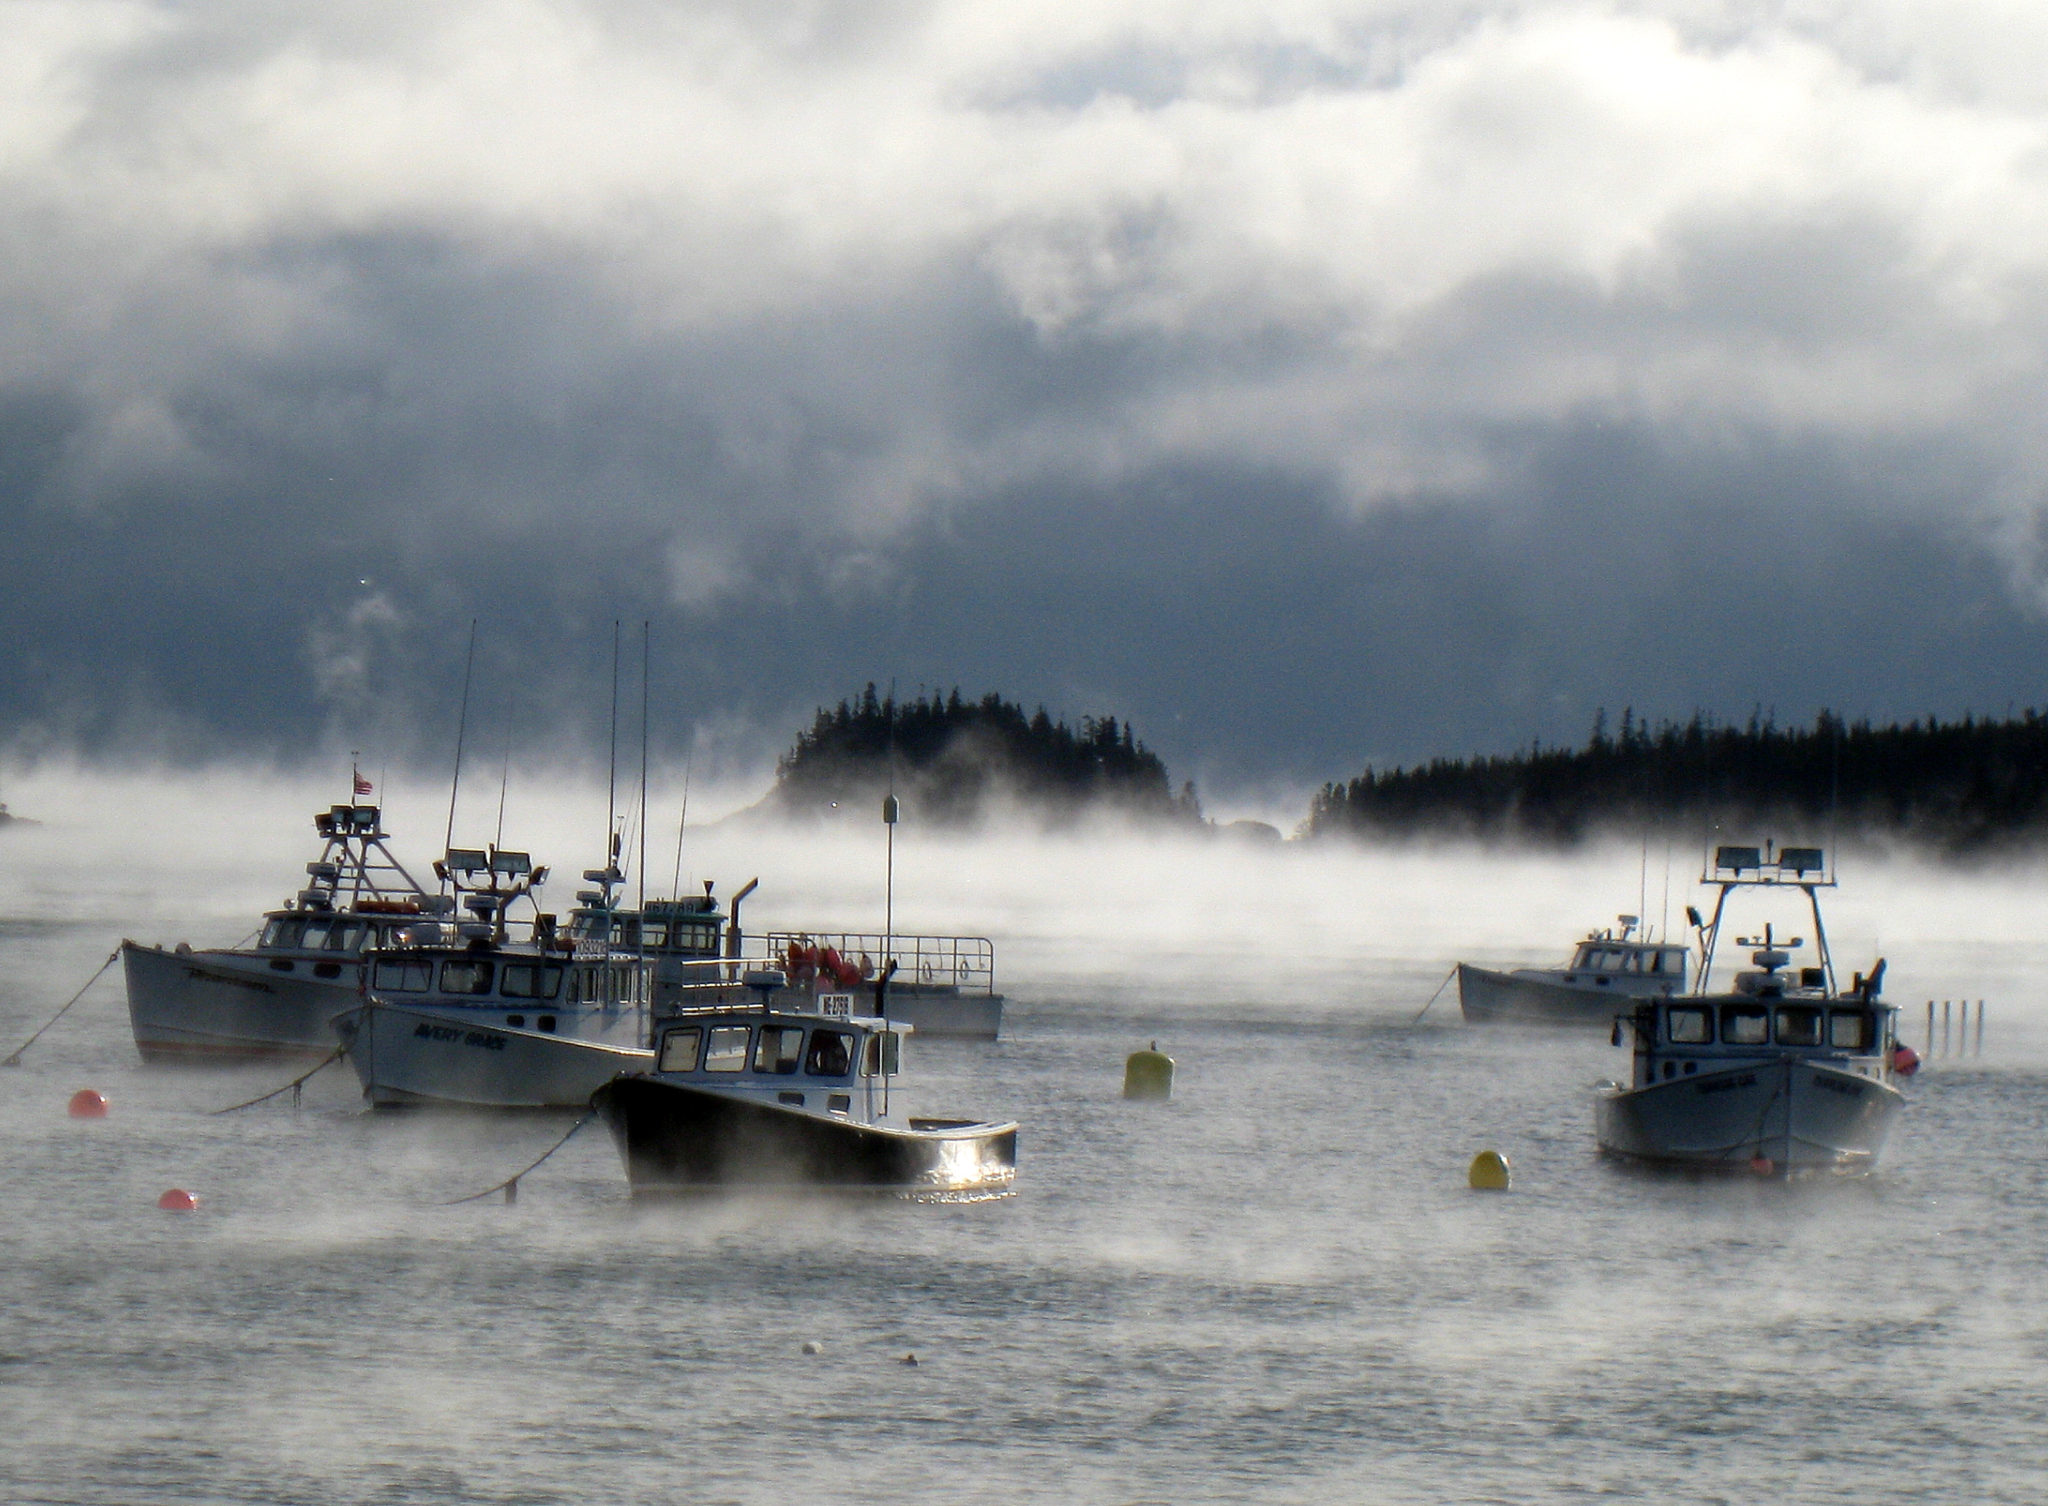 Maine lobster boats winter